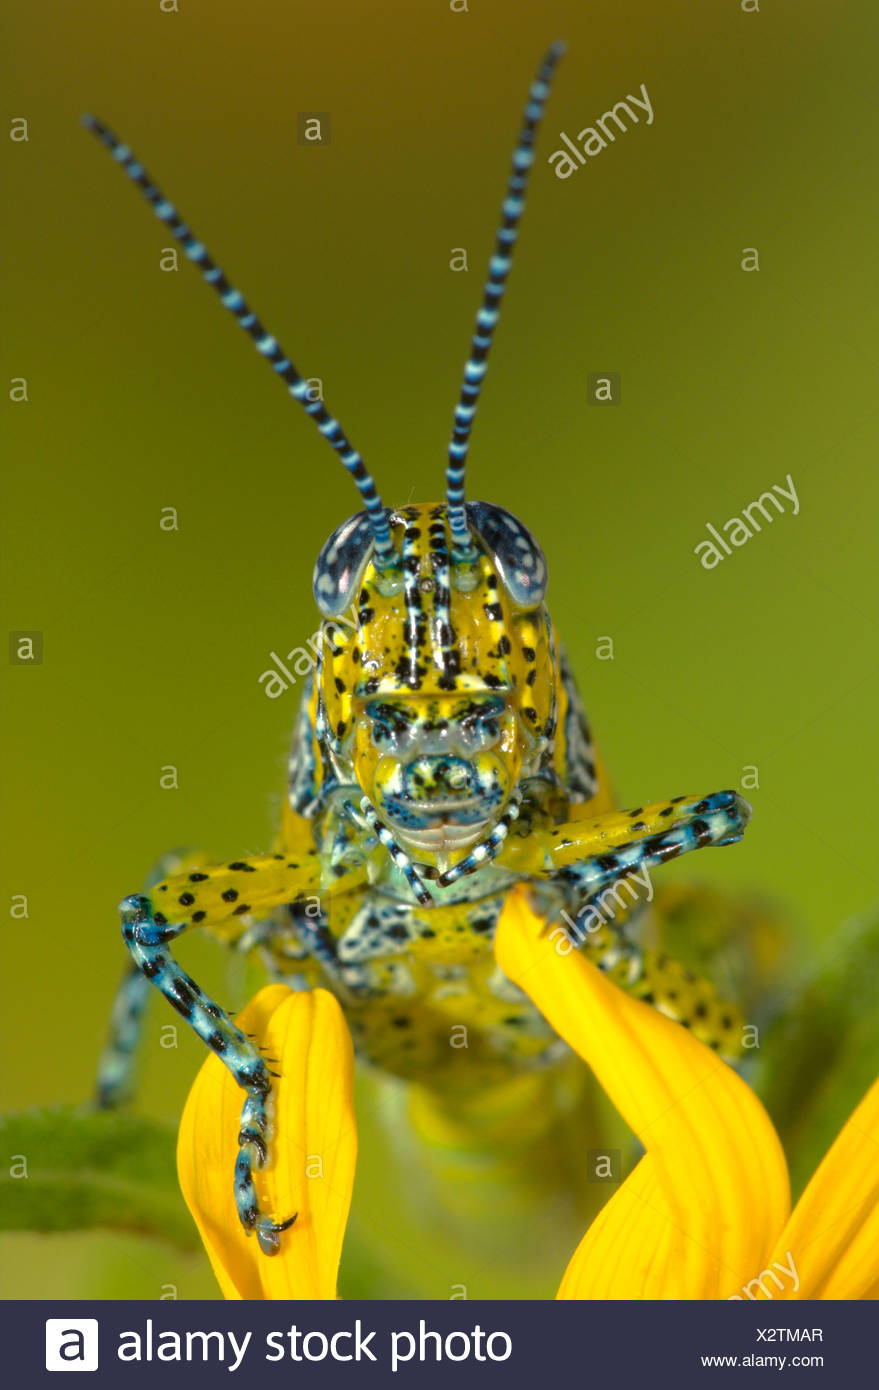 PANTHER-SPOTTED GRASSHOPPER (Poecilotettix pantherinus) native to southern Arizona and northwestern Mexico. - Stock Image